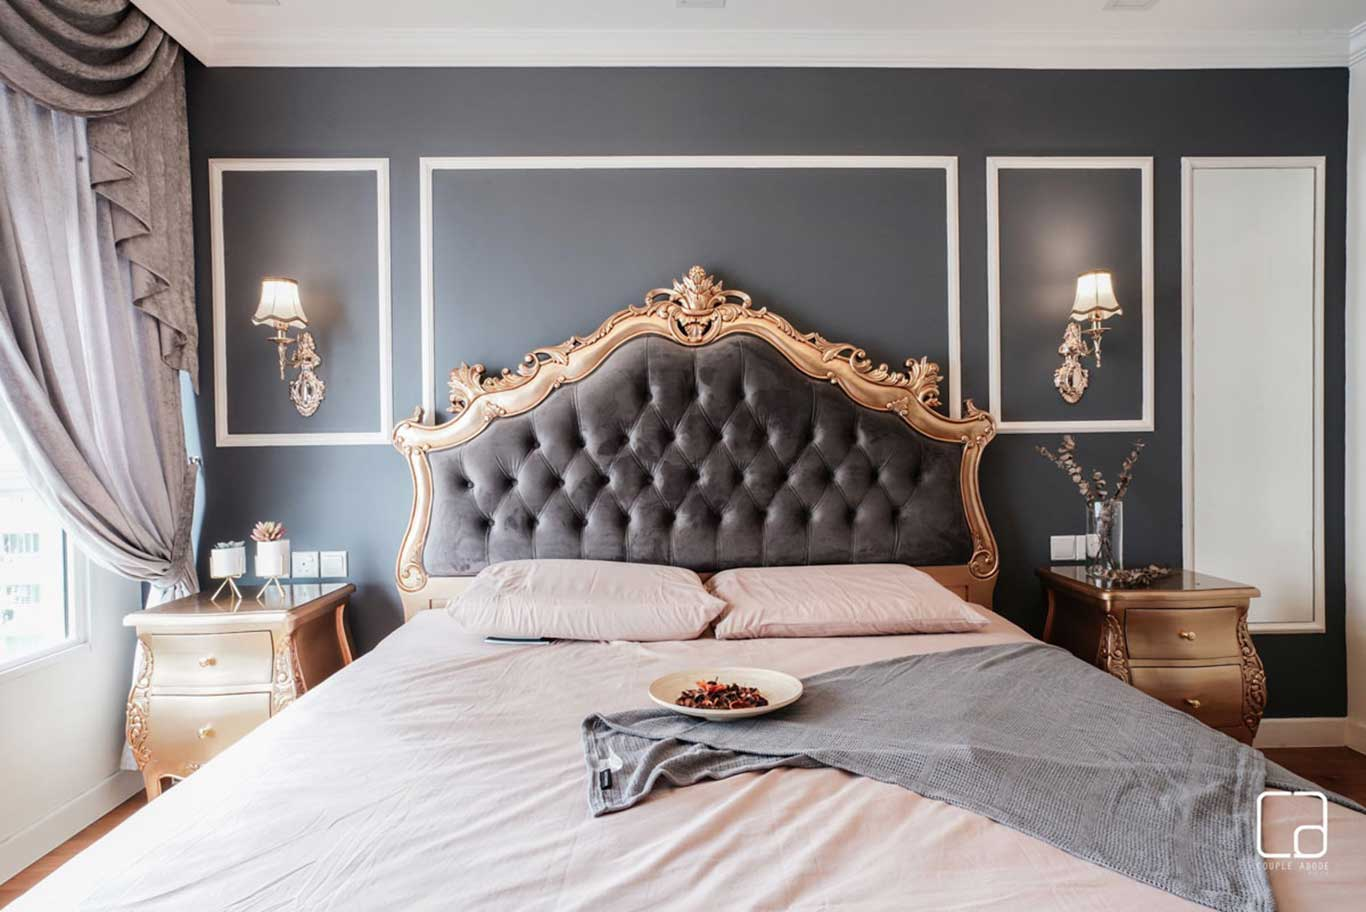 Large master bed with ornate quilted headboard against a backdrop of grey-toned walls.